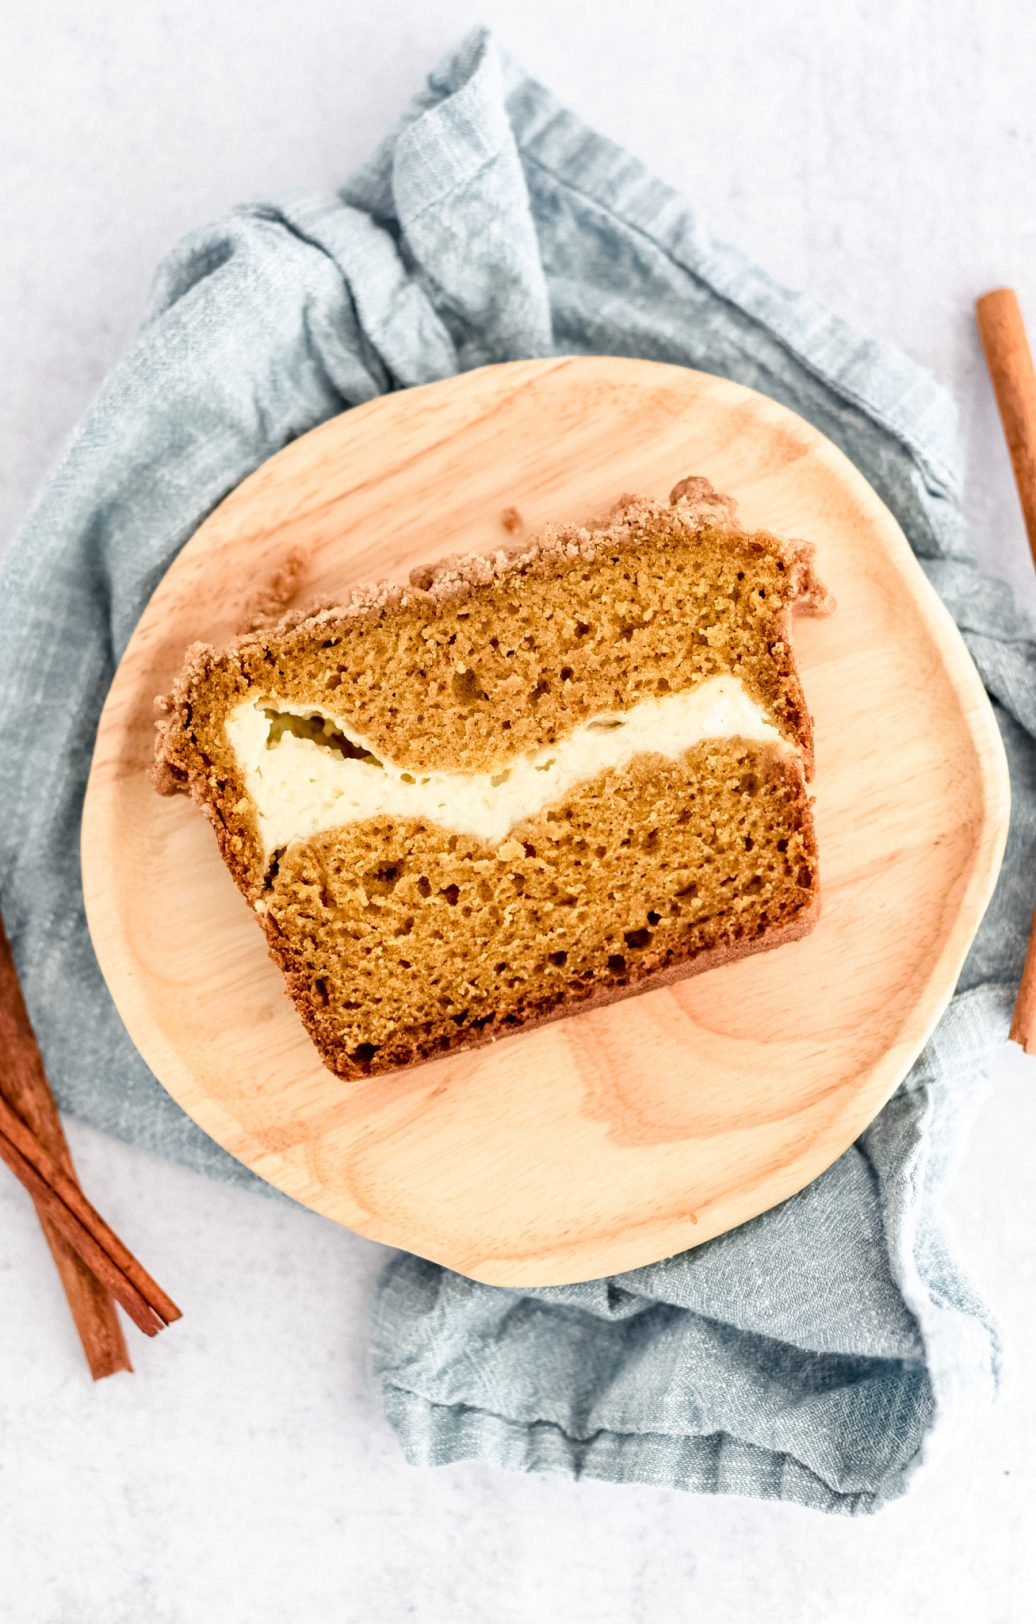 pumpkin bread sliced on plate